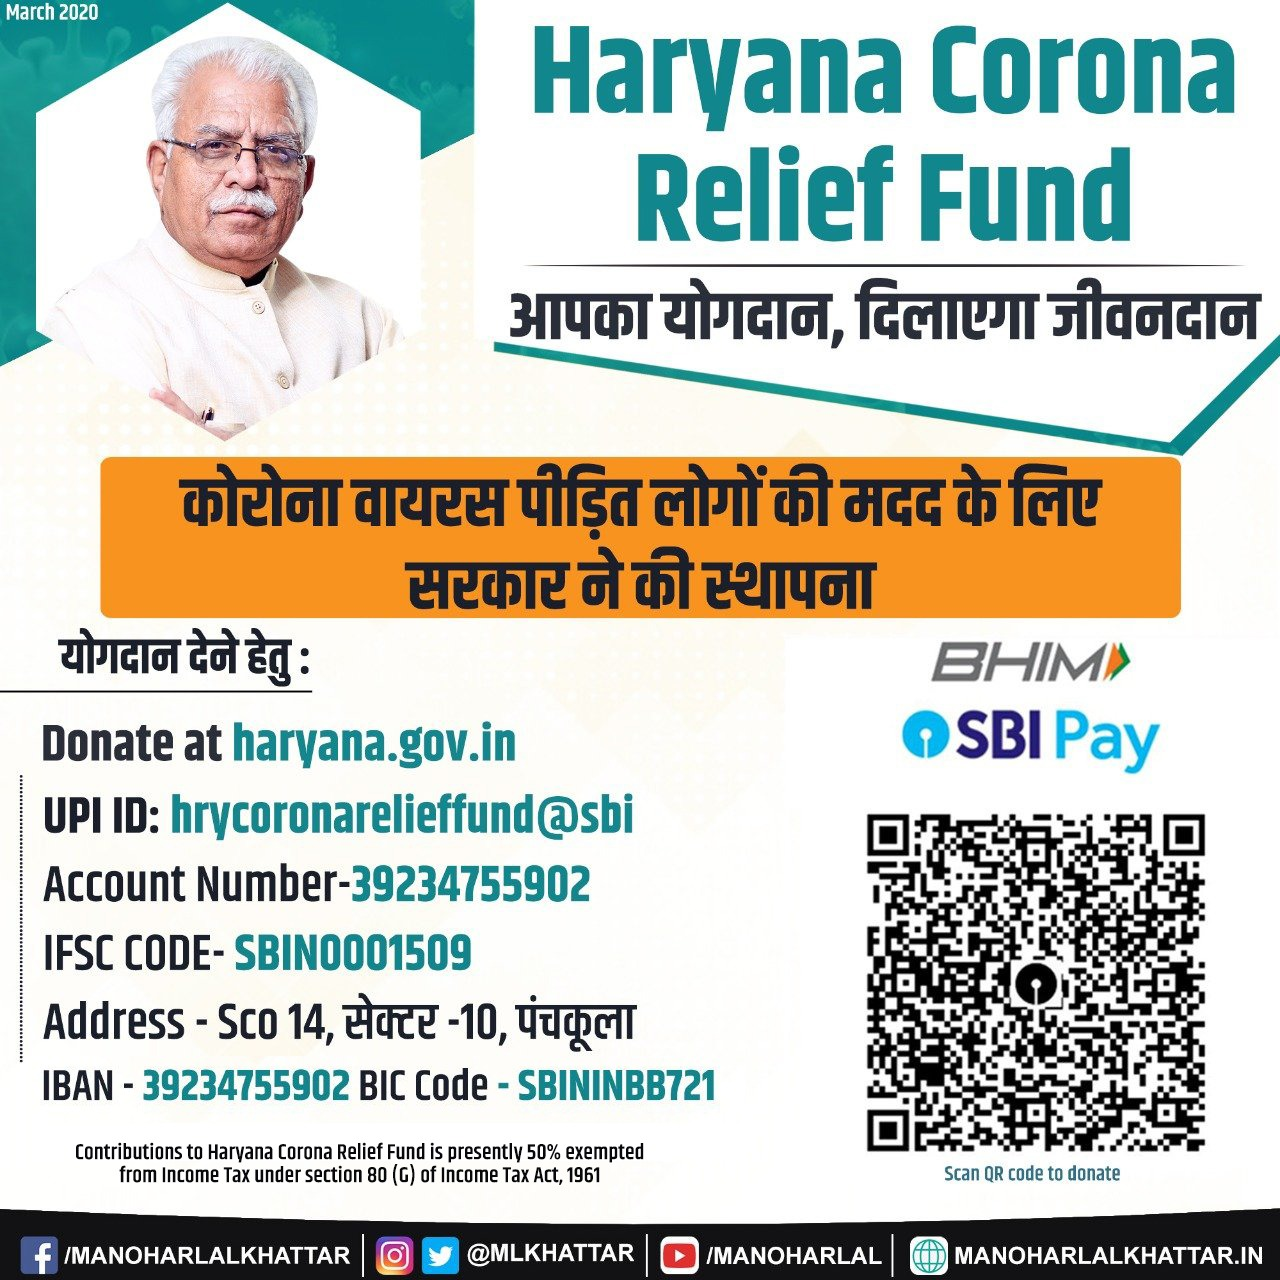 Haryana Corona relief fund